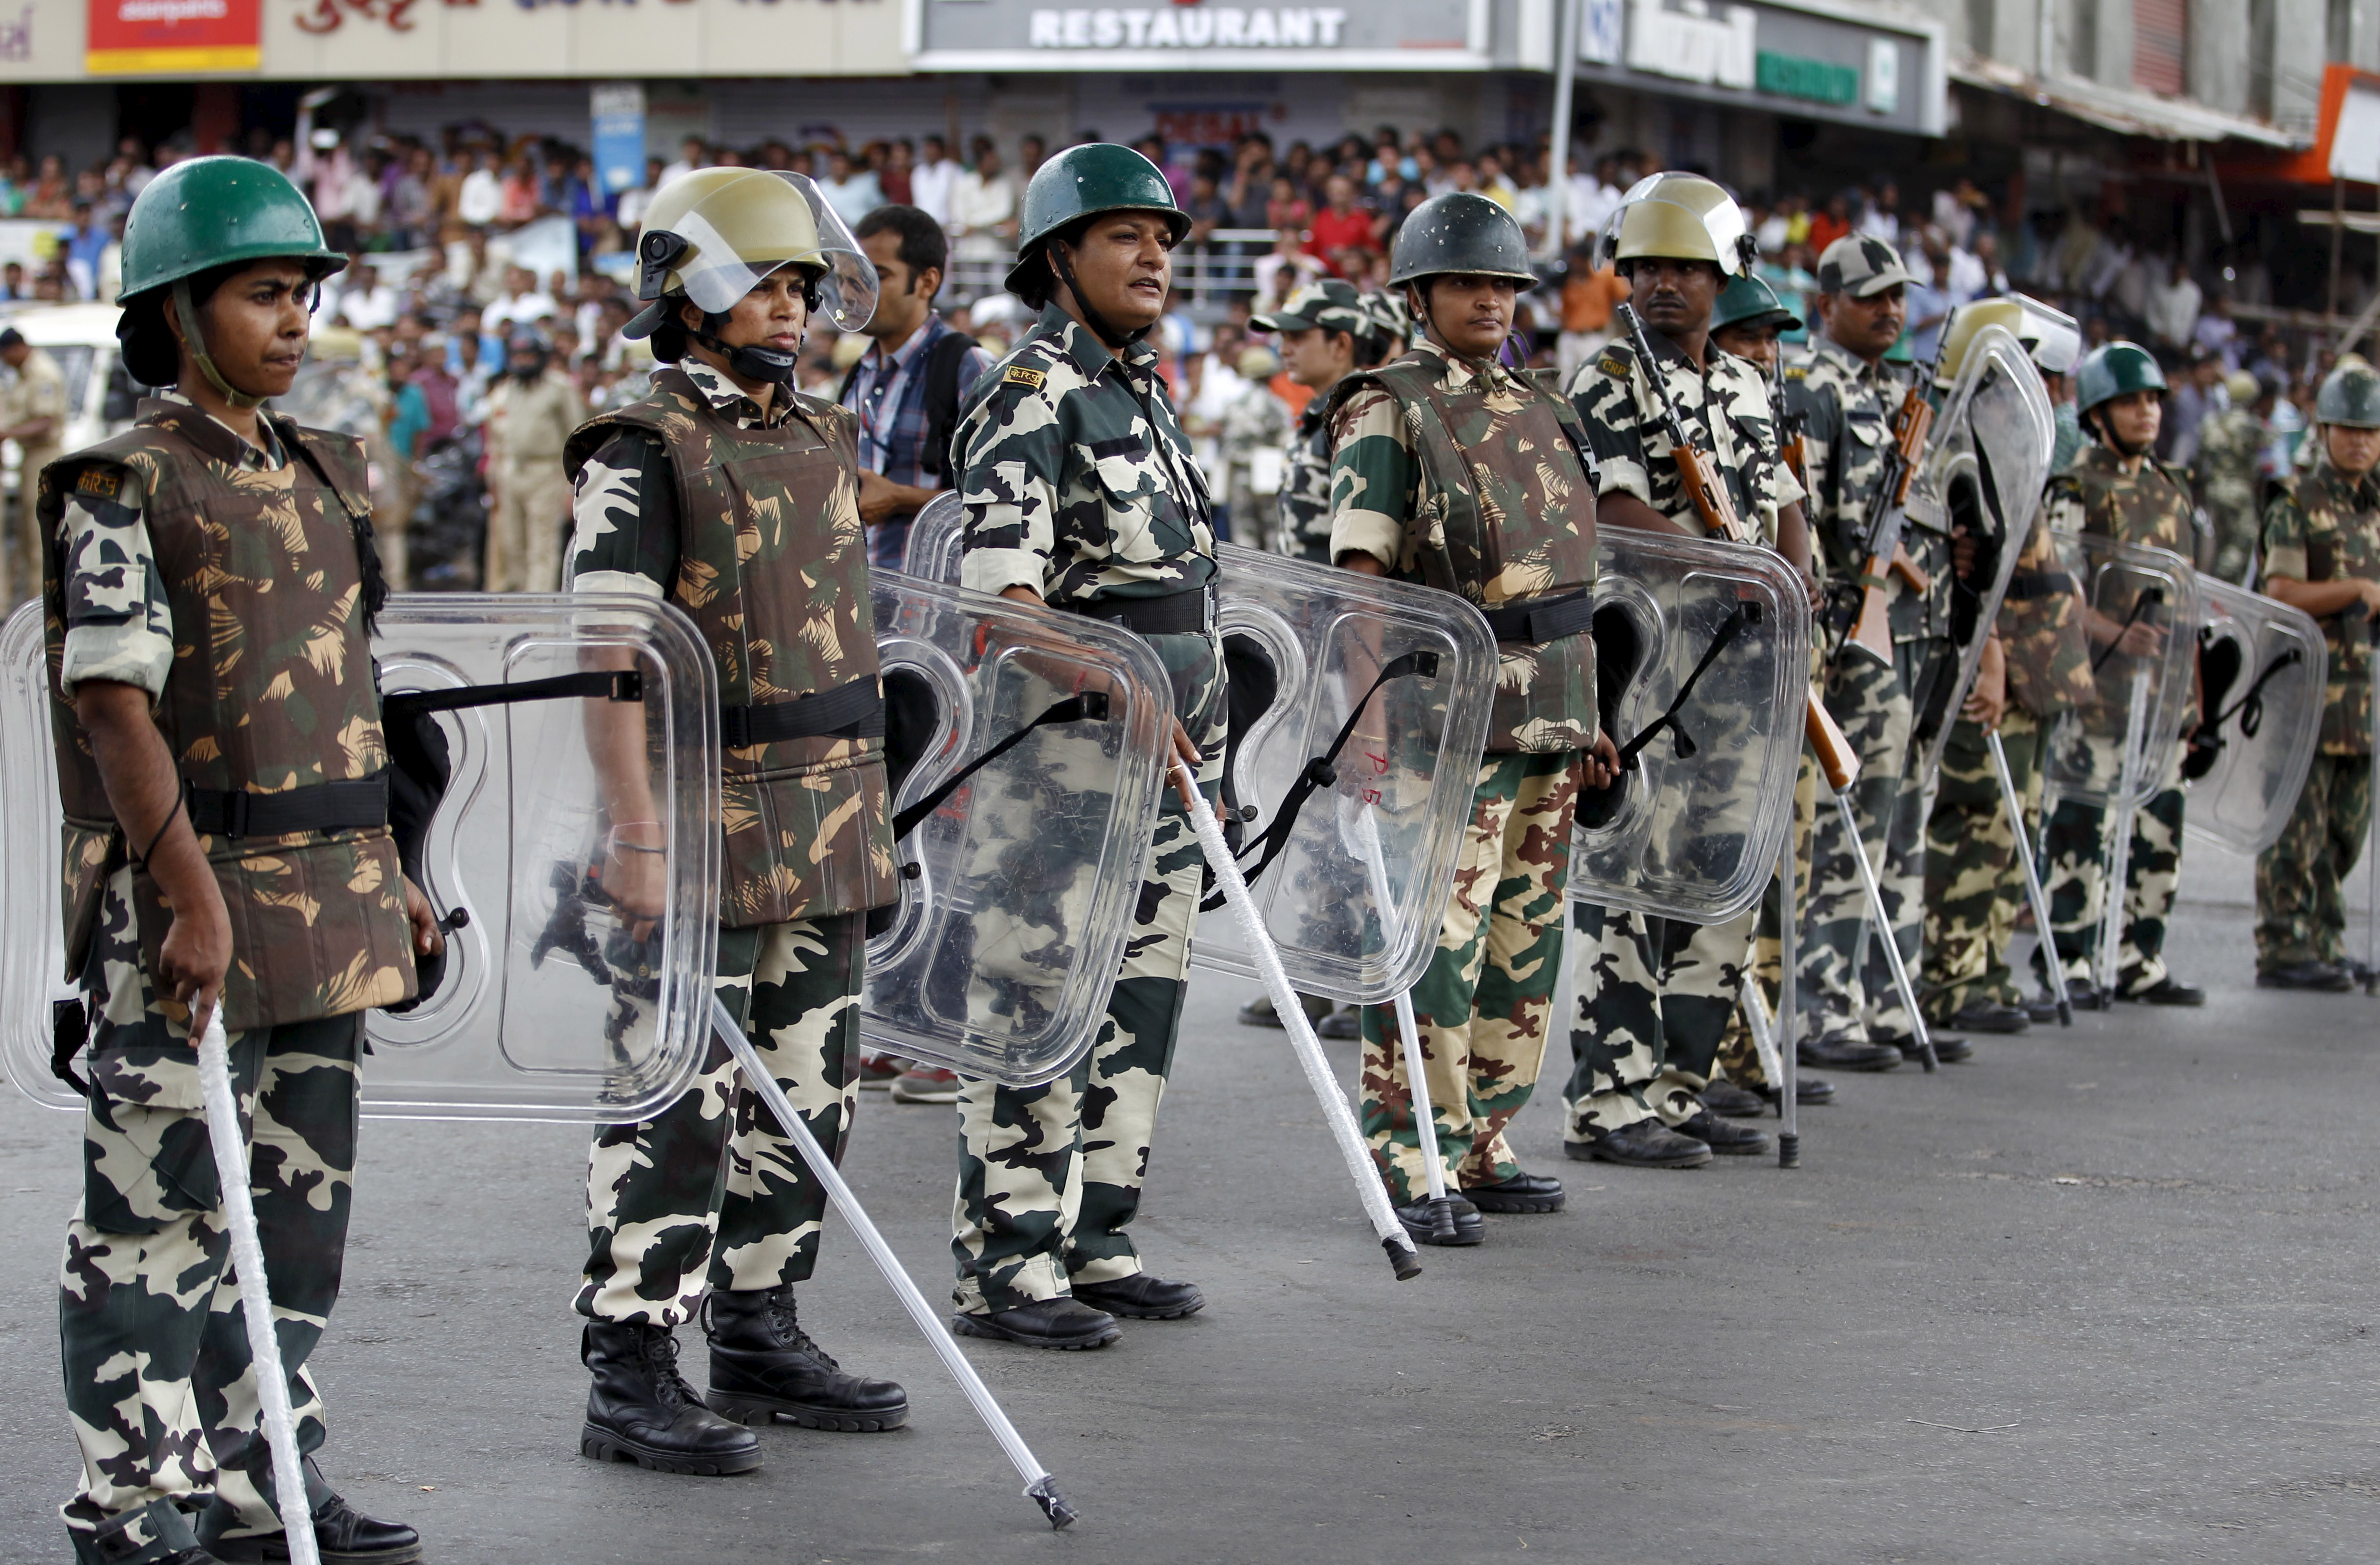 Paramilitary troopers stand guard during the funeral procession of Shwetang Patel in Ahmedabad, India, August 30, 2015. An Indian court in Gujarat state ordered crime investigators on Friday to investigate the death of 32-year old Patel, who allegedly died in police custody after he was taken away by the police during a protest. According to family members, Patel was picked up by police from his home in Bapunagar area after violence broke out in the state following a mammoth rally by the powerful Patel community seeking reserved jobs and education places.   REUTERS/Amit Dave - RTX1Q8Z1